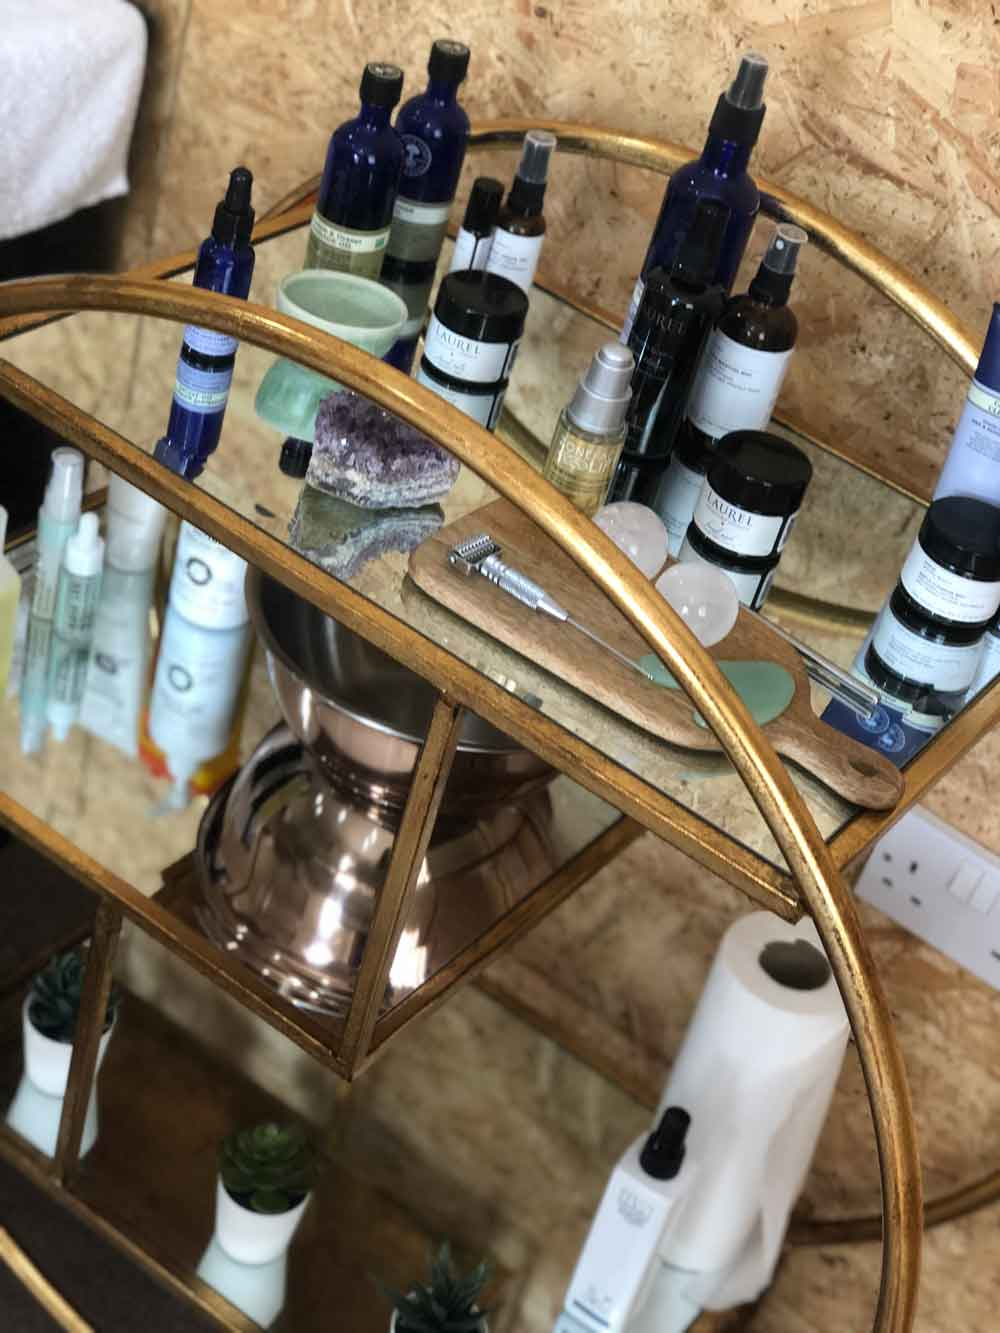 neals yard products zone facelift products and laurel skincare - OUR TREATMENTS